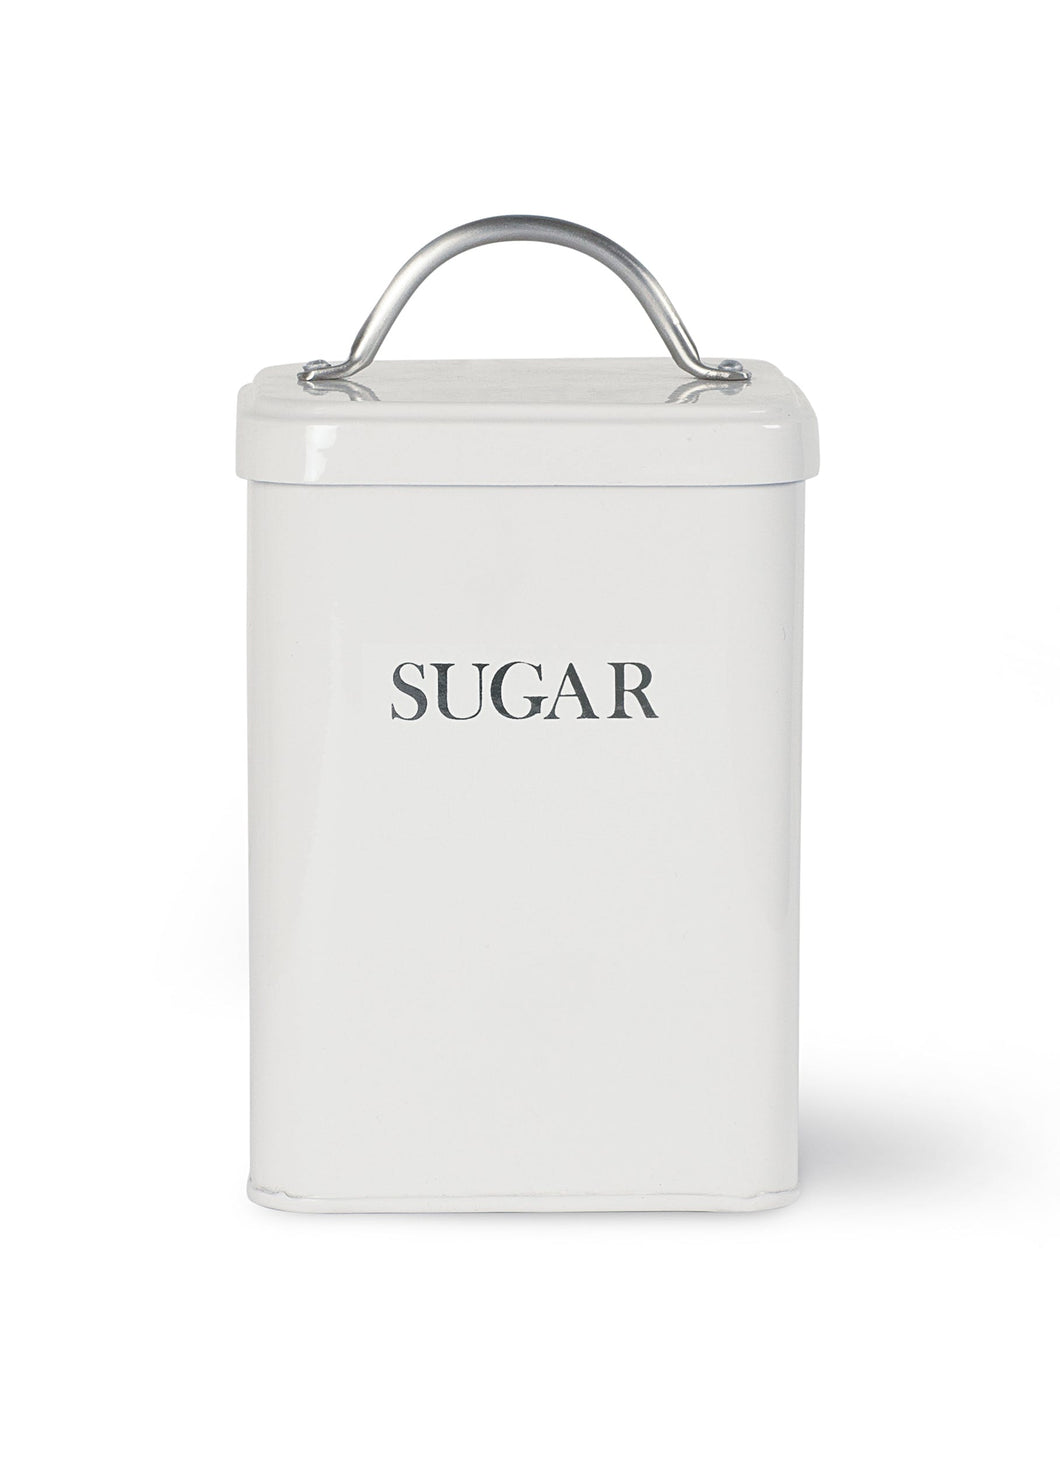 Garden Trading Sugar Canister - Chalk